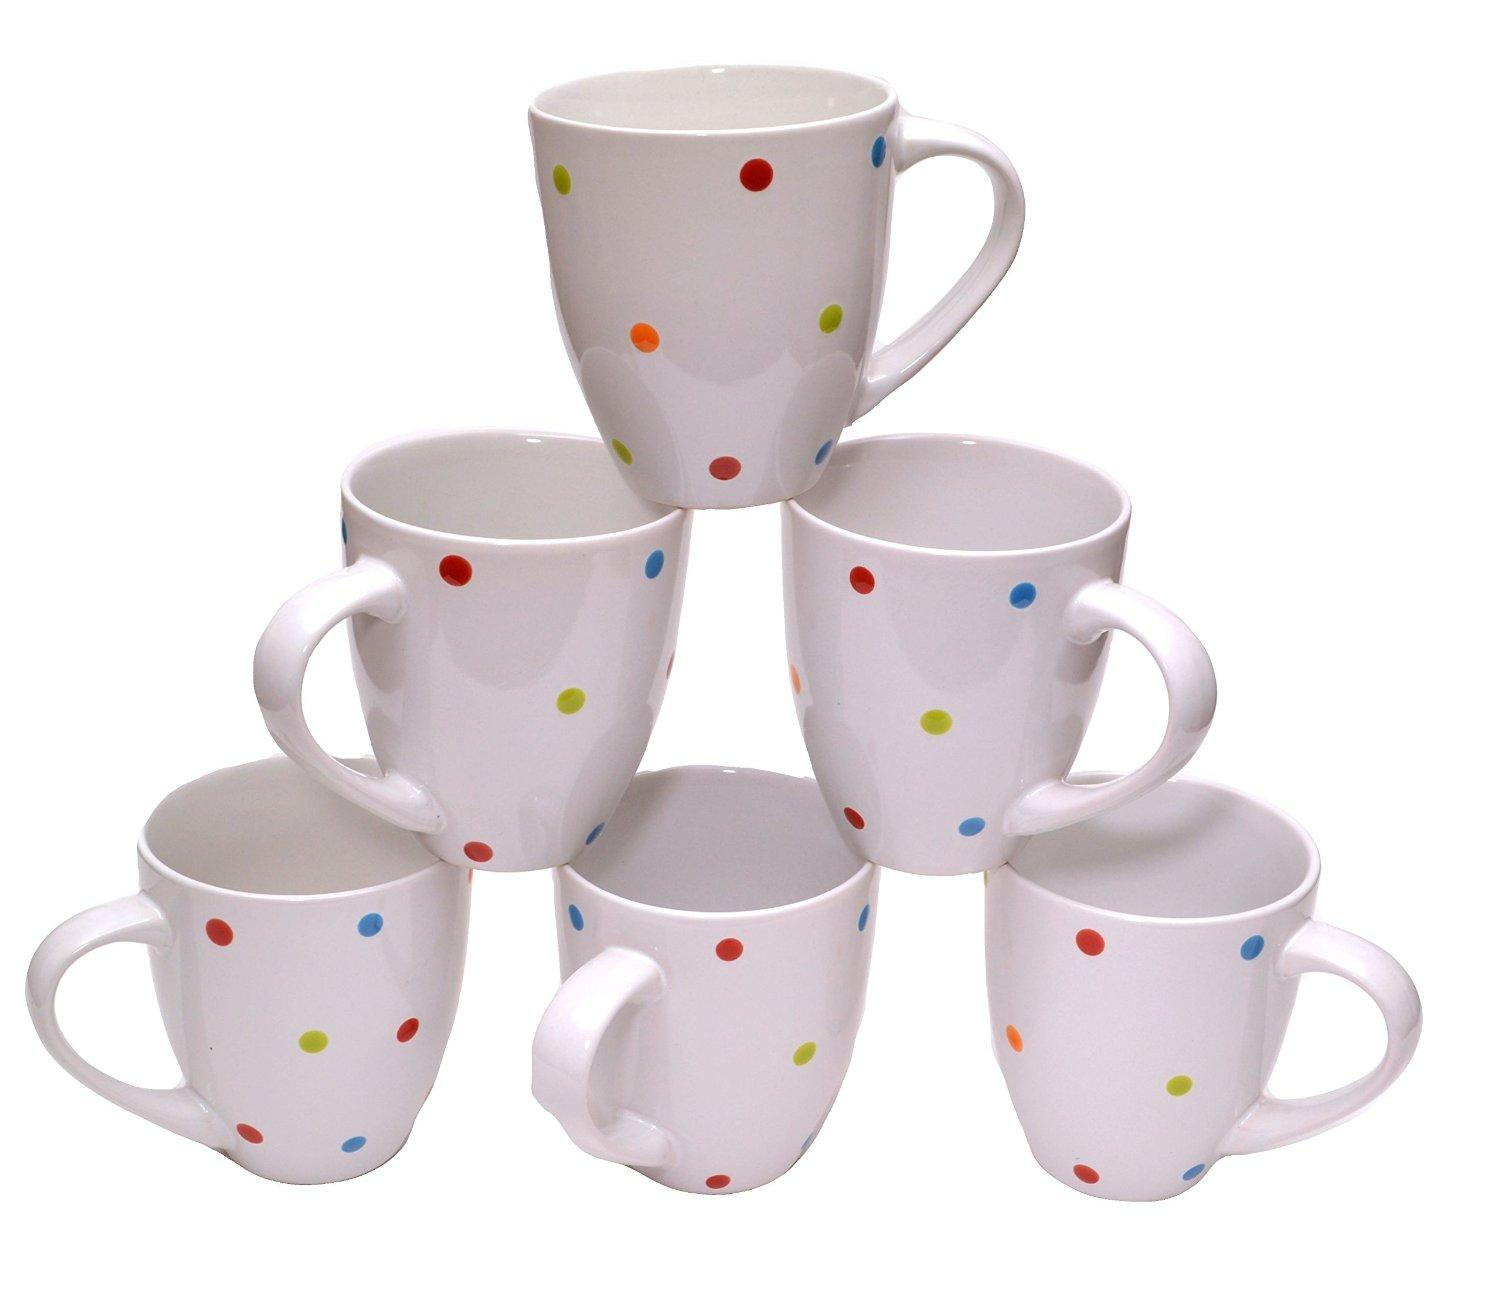 Francois et Mimi Large Ceramic Coffee Mugs, 16-Ounce, White Polka Dots, Set of 6